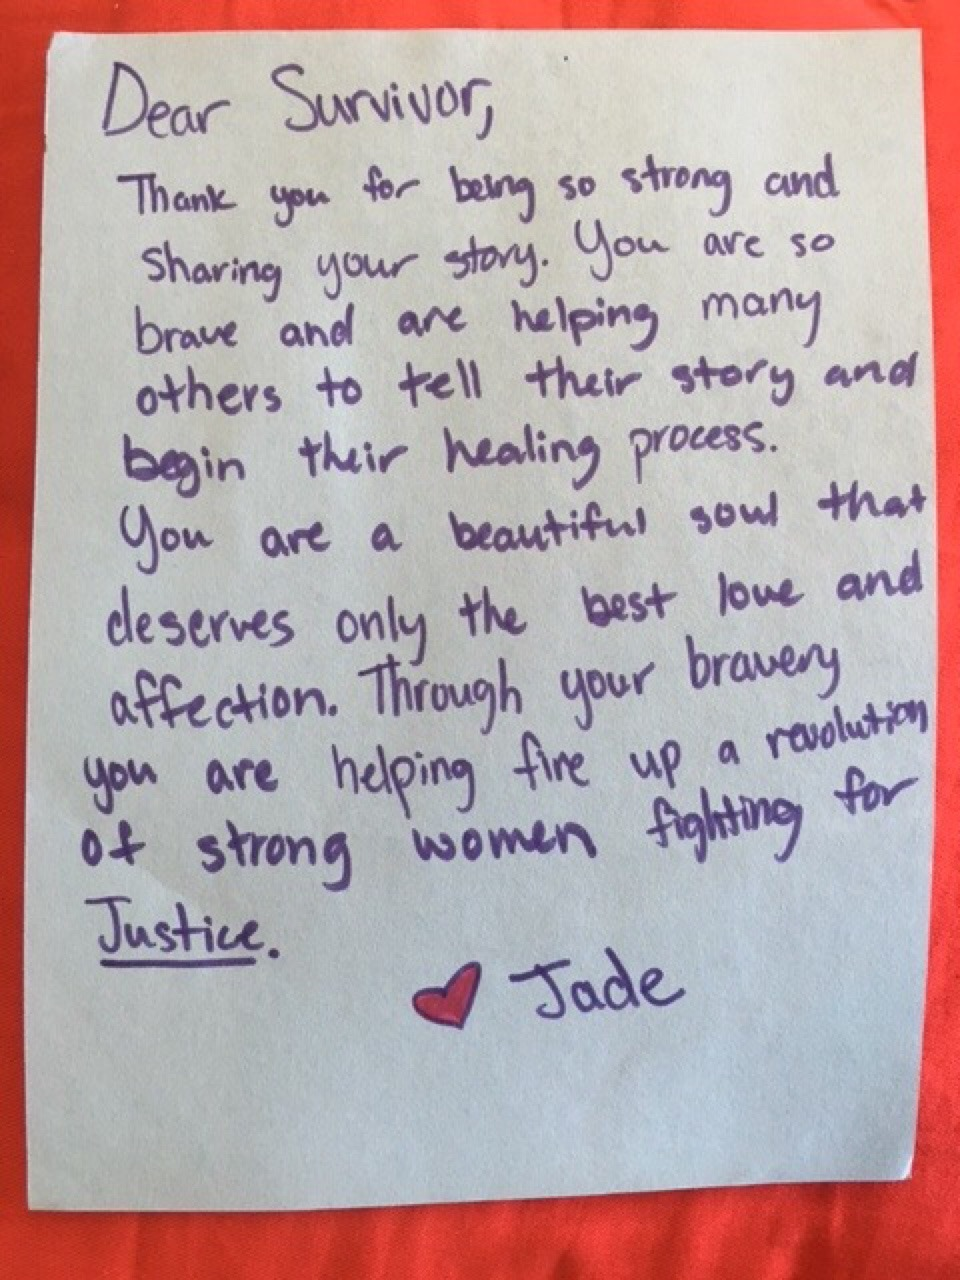 Dear Survivor,  Thank you for being so strong and sharing your story. You are so brave and are helping many others to tell their story and begin their healing process. You are a beautiful soul that deserves only the best love and affection. Through your bravery you are helping fire up a revolution of strong women fighting for justice.  Love, Jade